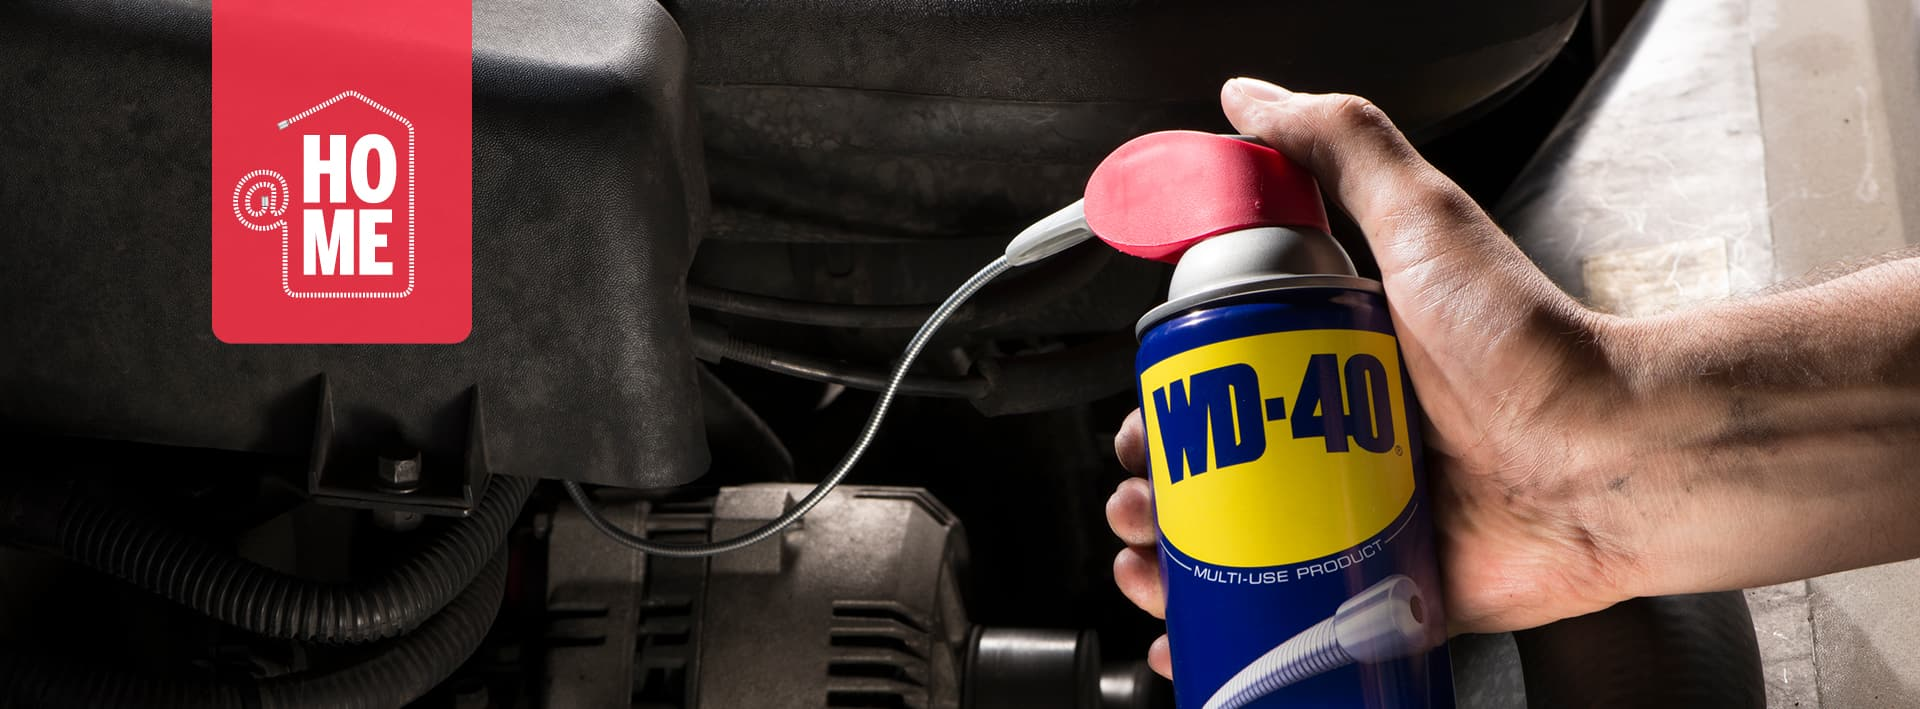 WD-40 site banner @home